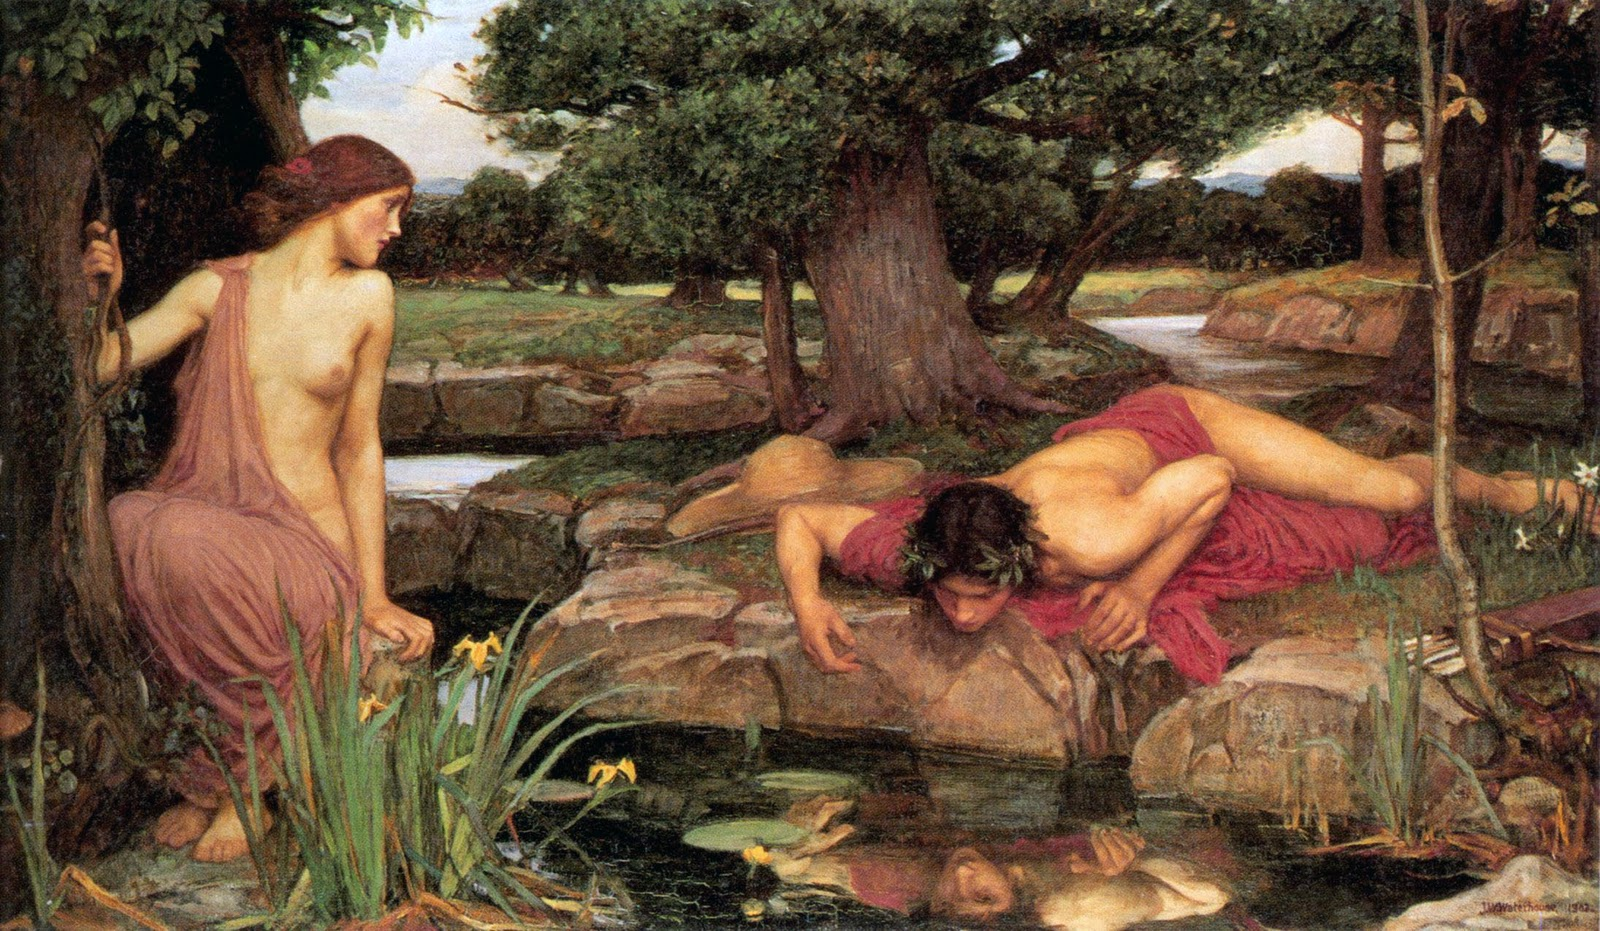 Eco e Narciso ( Echo e Narcissus) dipinto nel 1903 da John William Waterhouse